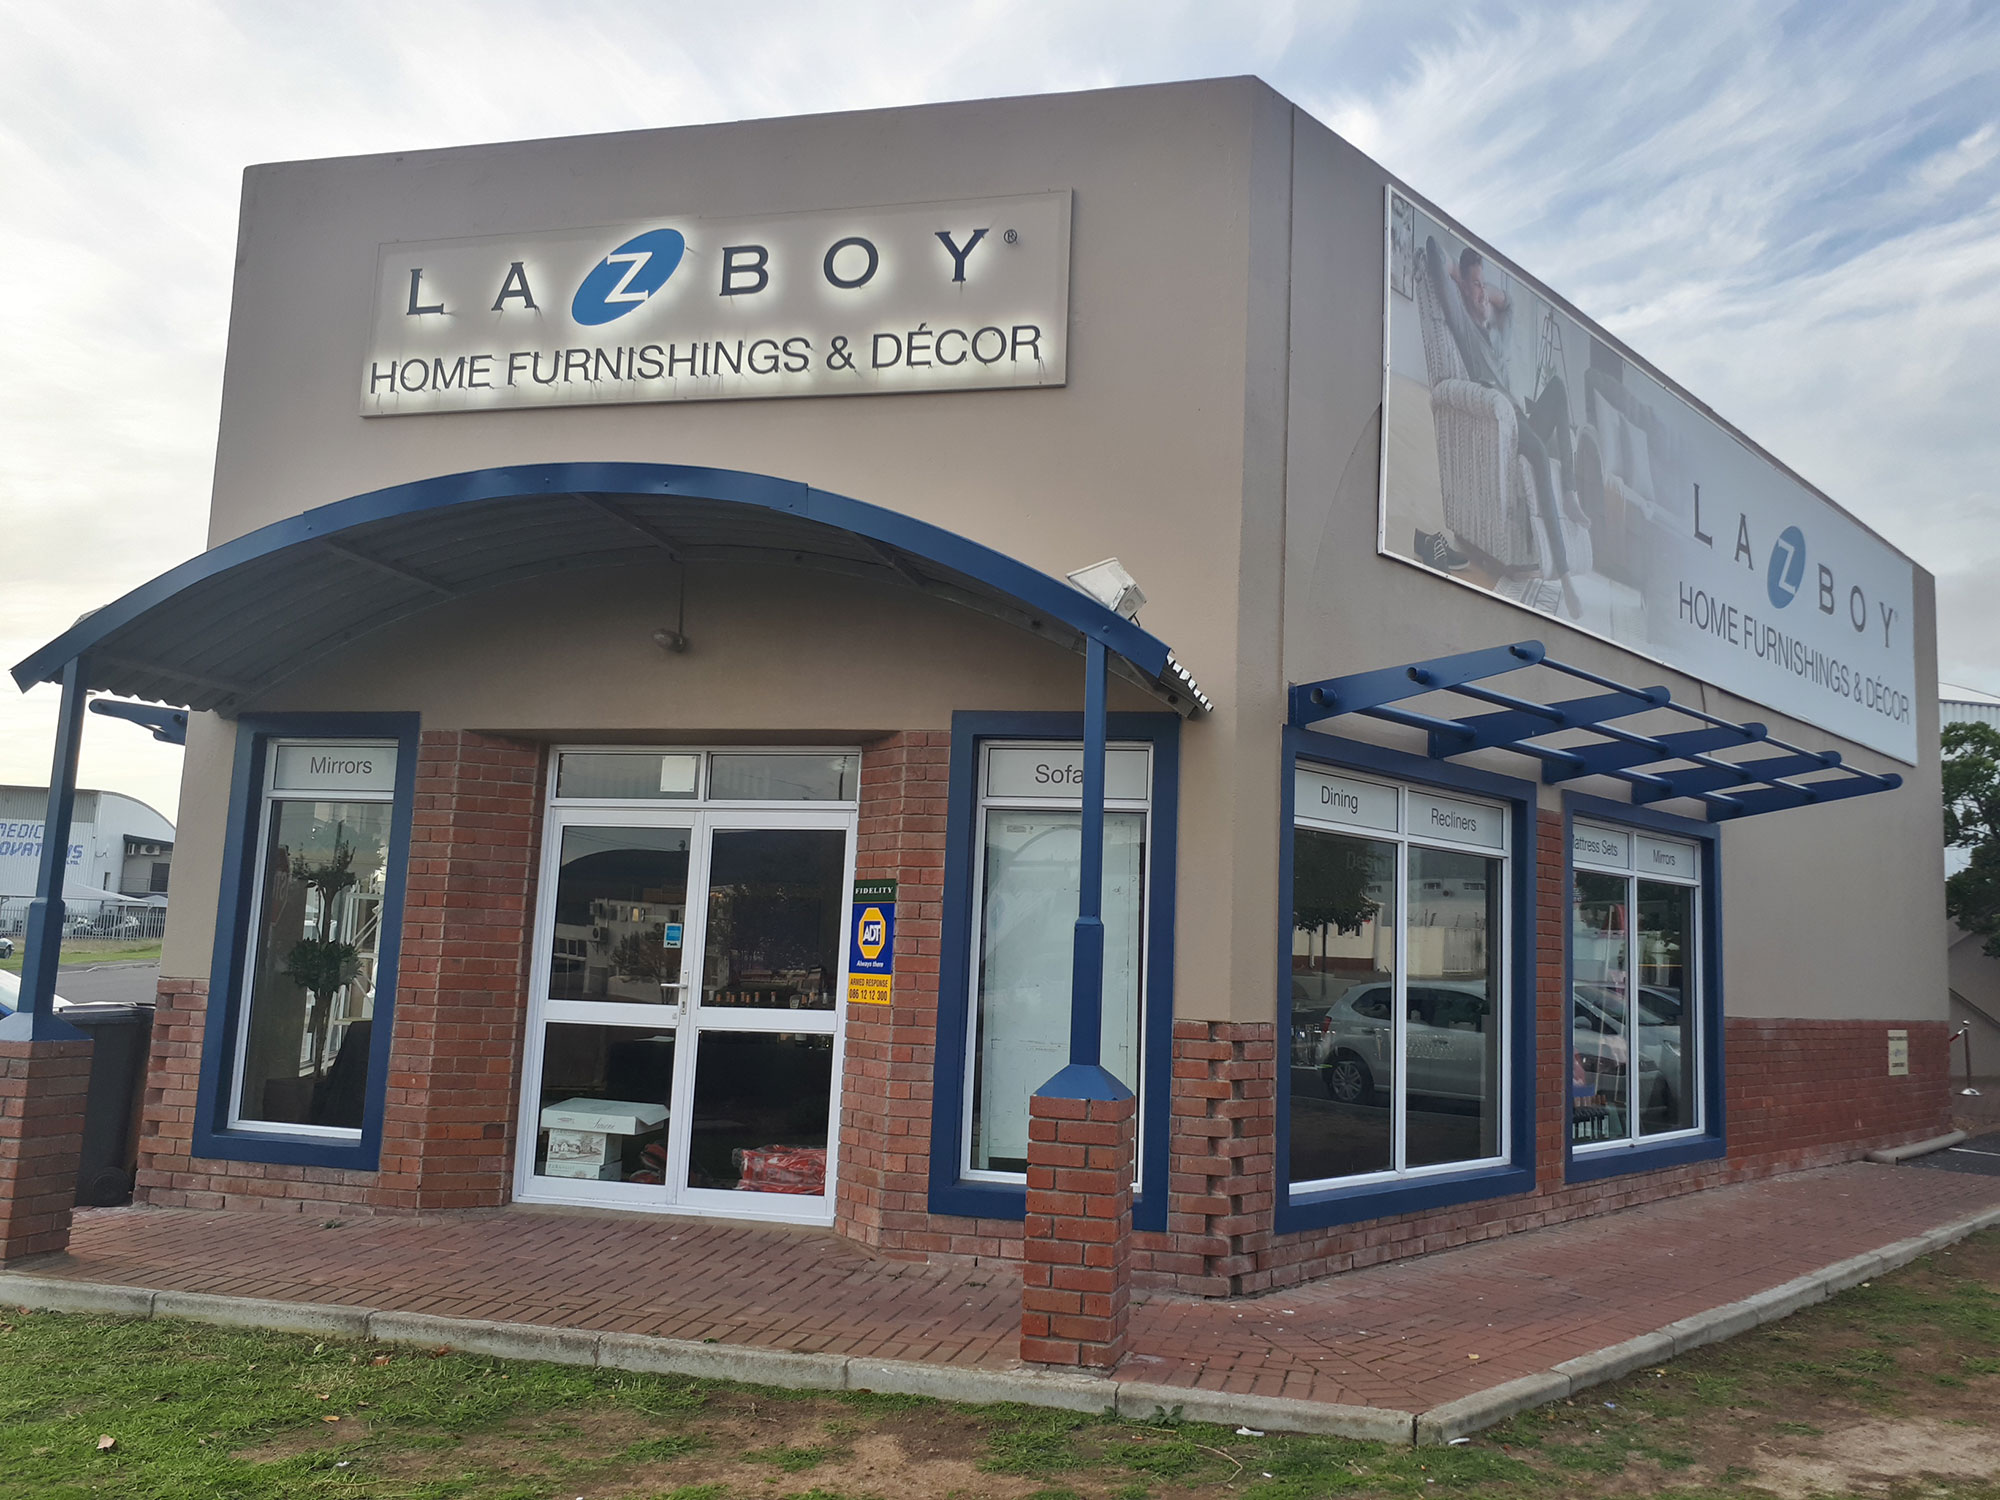 First La-Z-Boy Home Furnishing & Décor store in SA